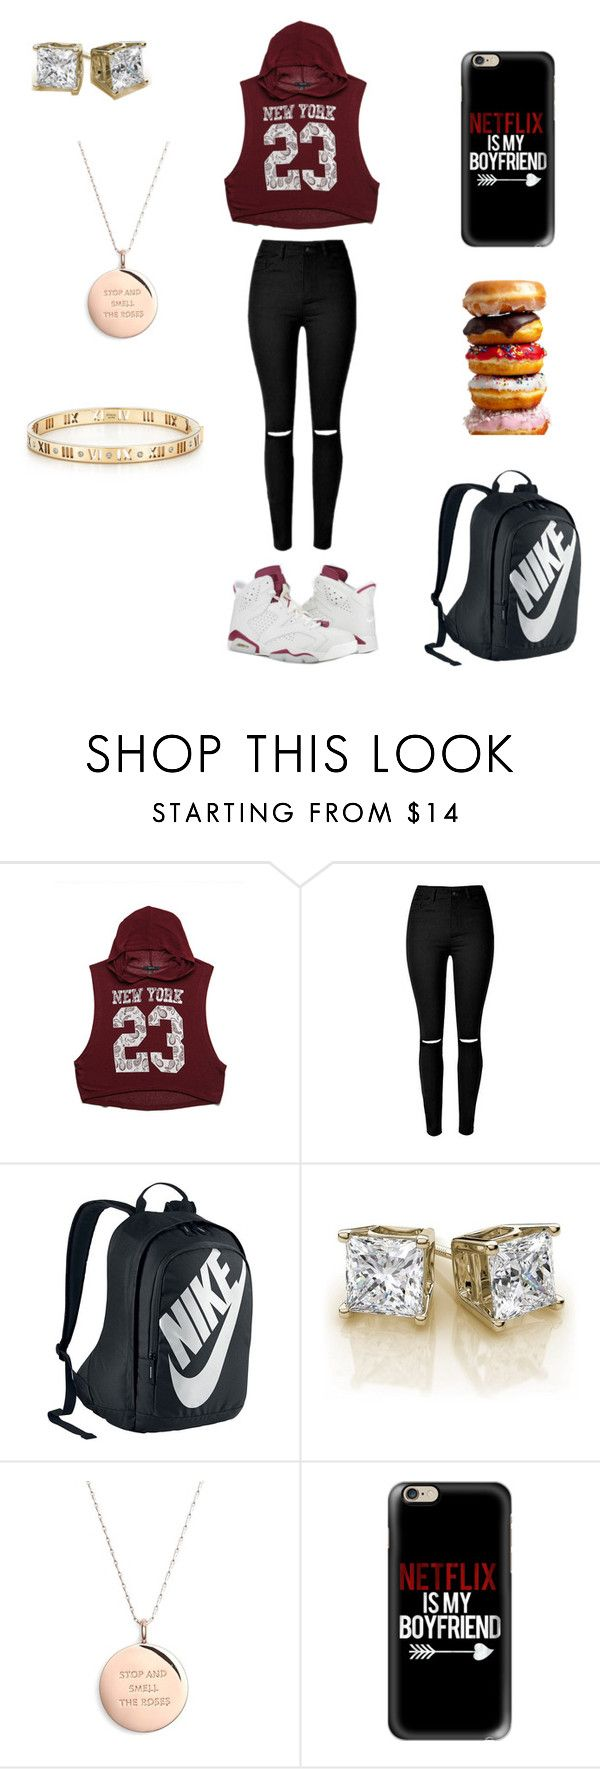 """""""☺️ Netflix is my boyfriend """" by prettymissmai ❤ liked on Polyvore featuring Forever 21, NIKE, Kate Spade, Casetify, Tiffany & Co., women's clothing, women, female, woman and misses"""